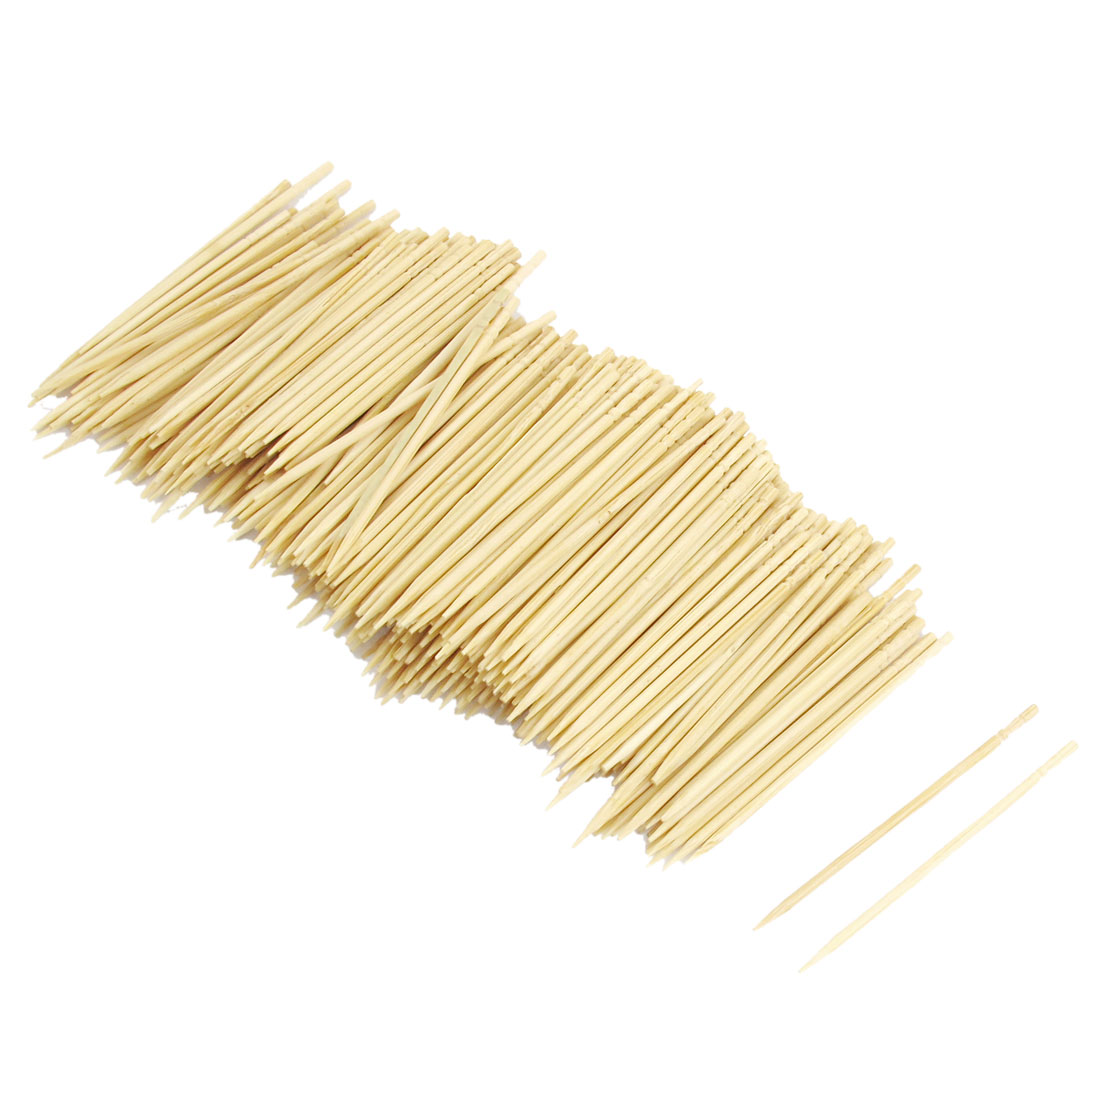 Bamboo Toothpicks Catering Cocktail Picks 6.4cm 600 Pcs